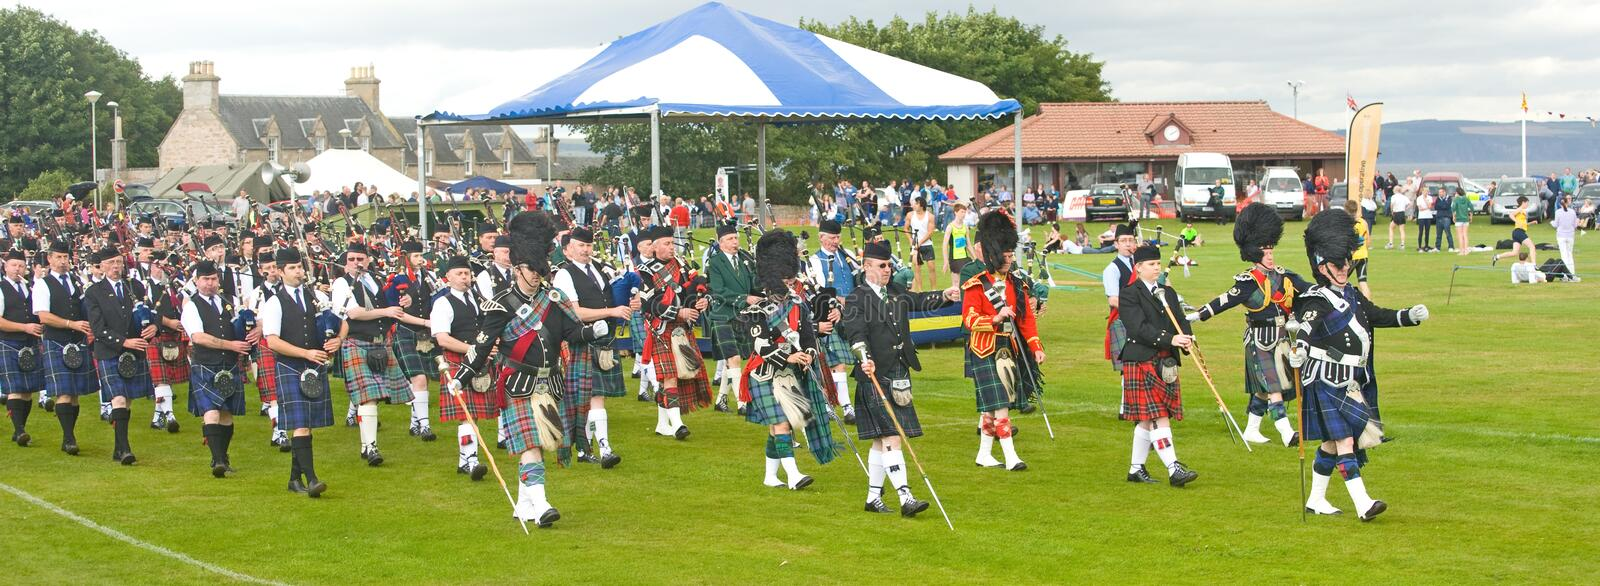 Massed Pipe bands marching at Nairn.